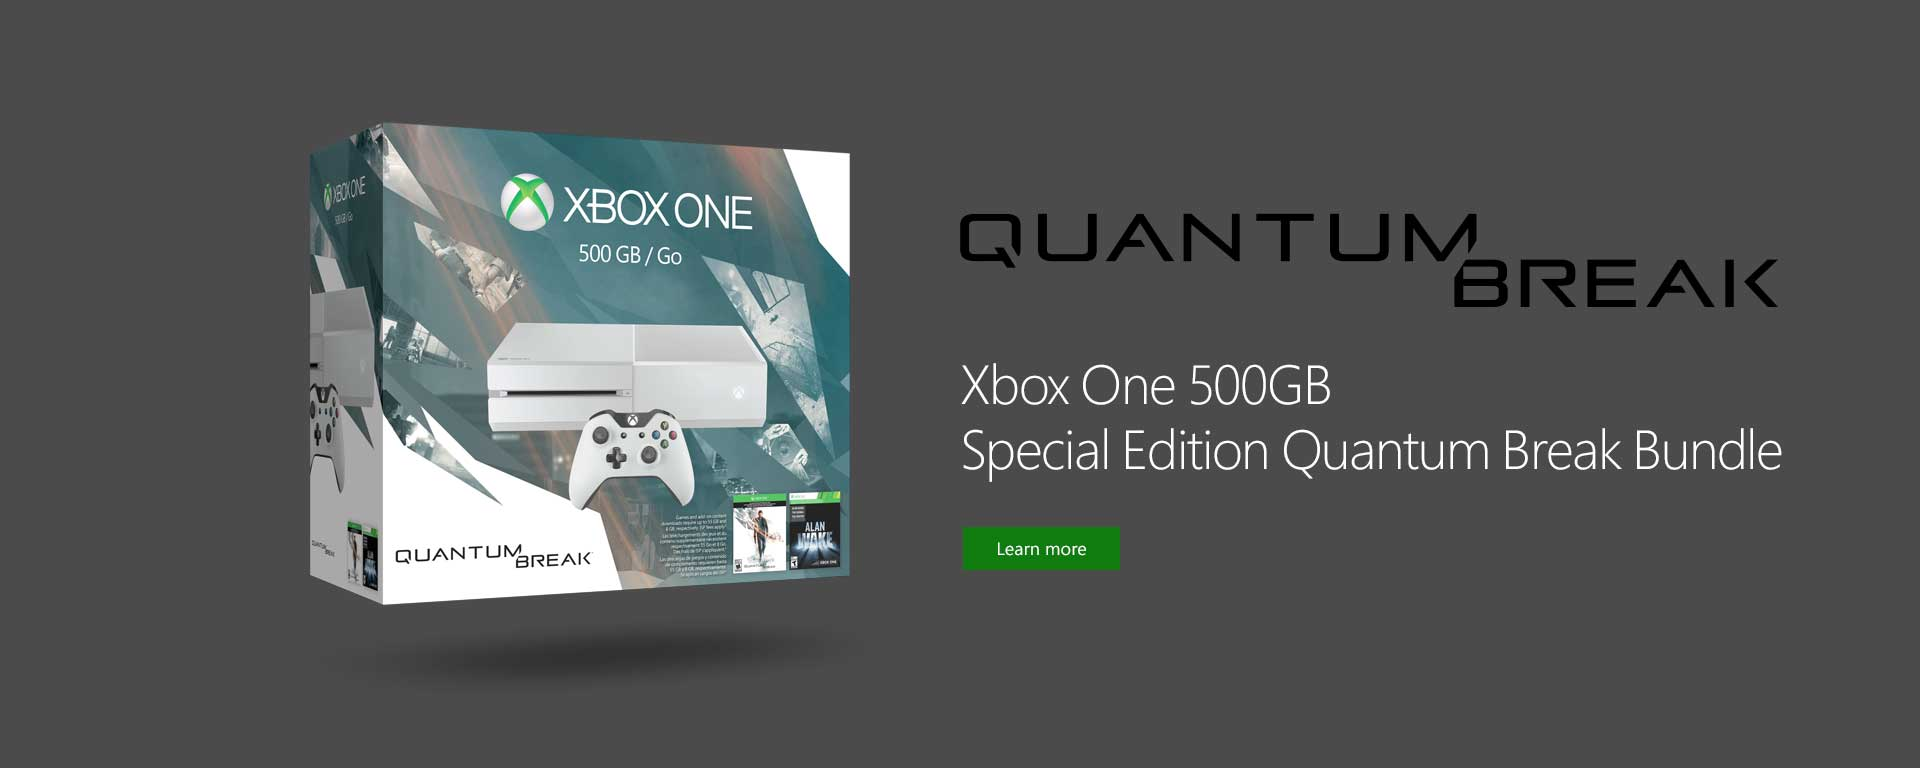 Xbox One Quantum Break Console Bundle